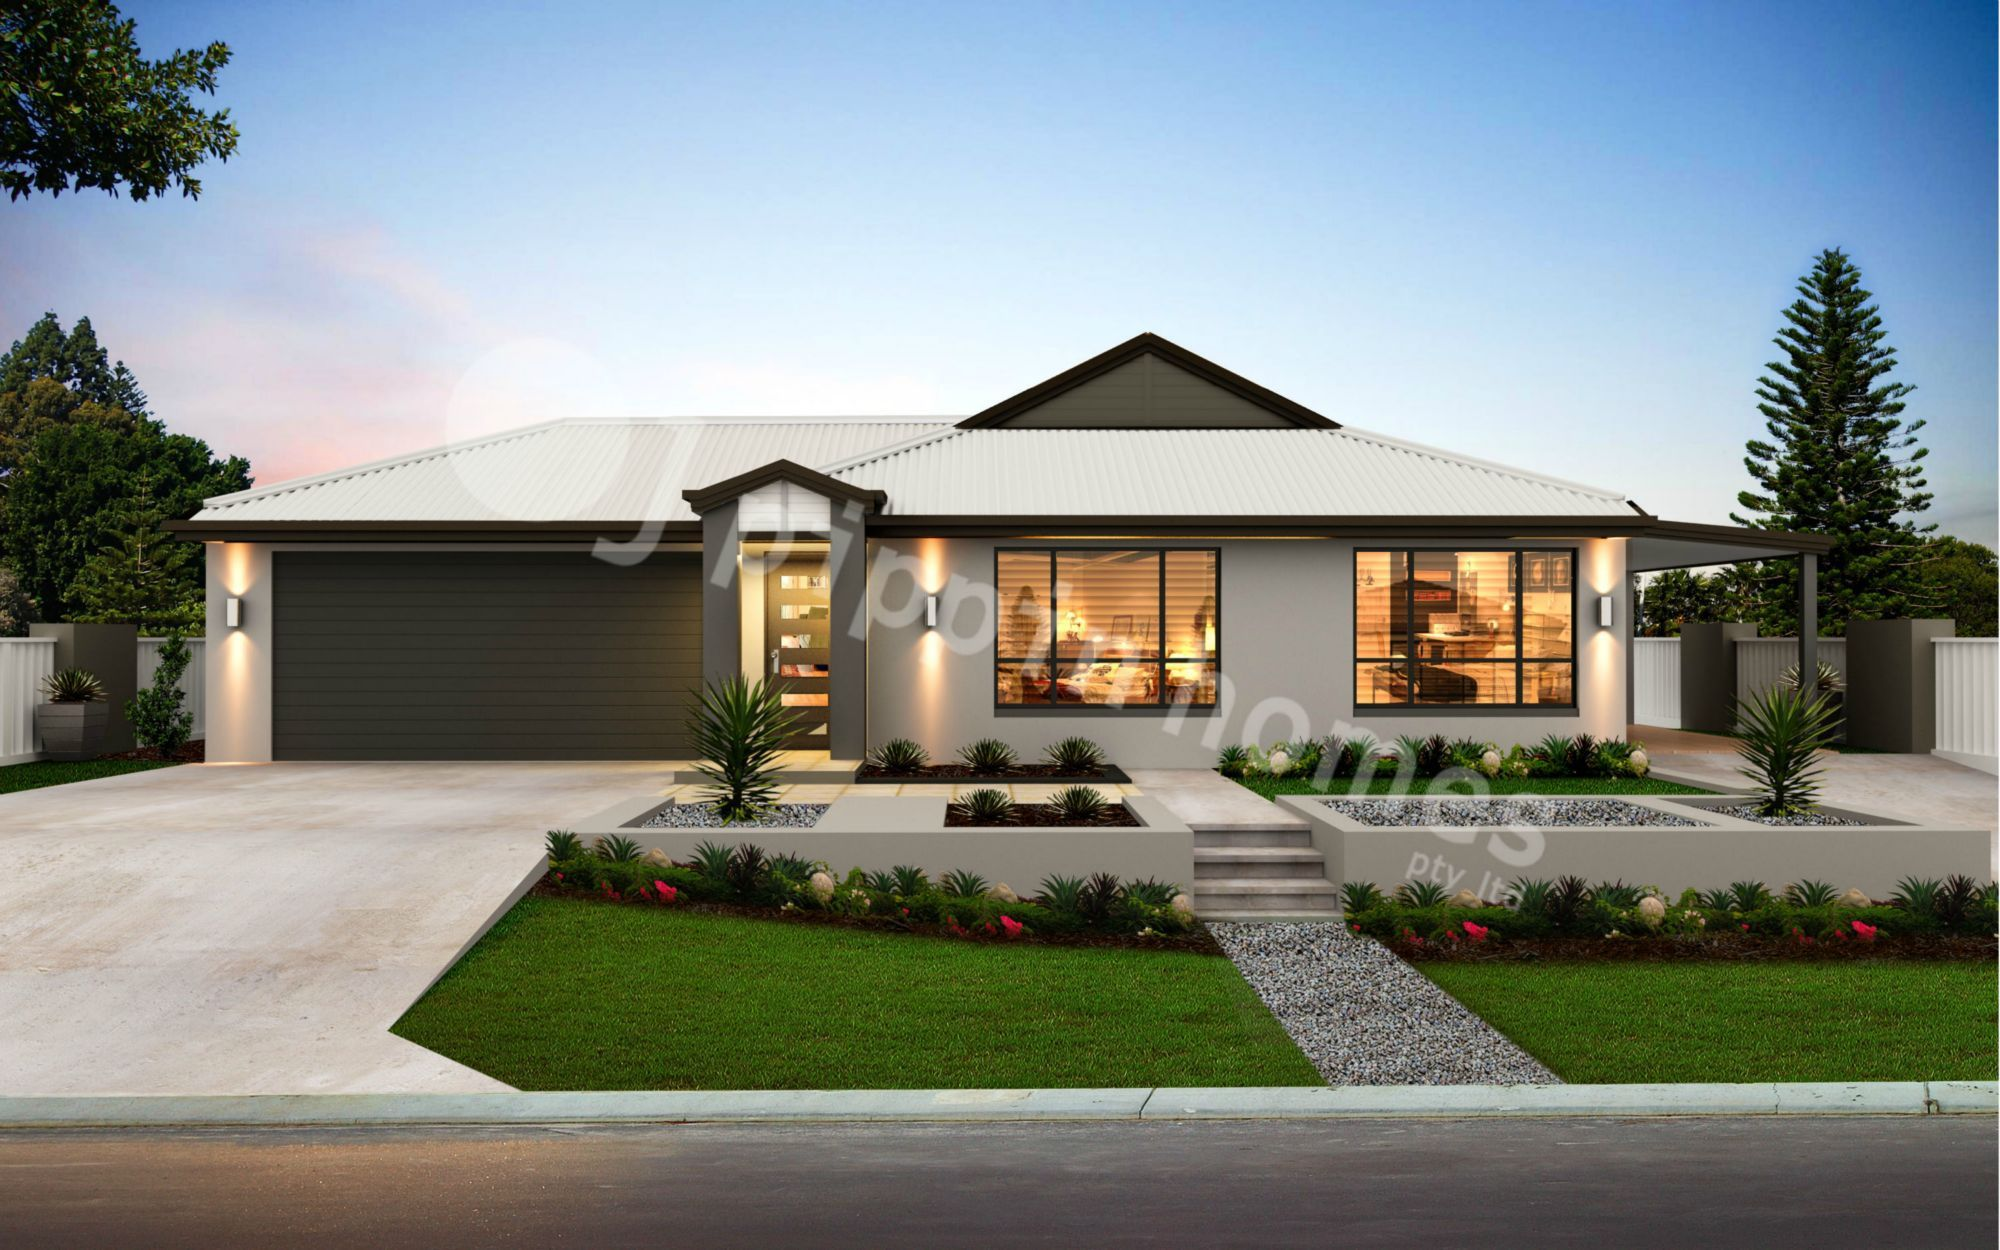 Grace 3 with a Dual Occupancy Double Garage is a very ... on house front doors, modern garage doors design, home luxury house design, front entrance design,